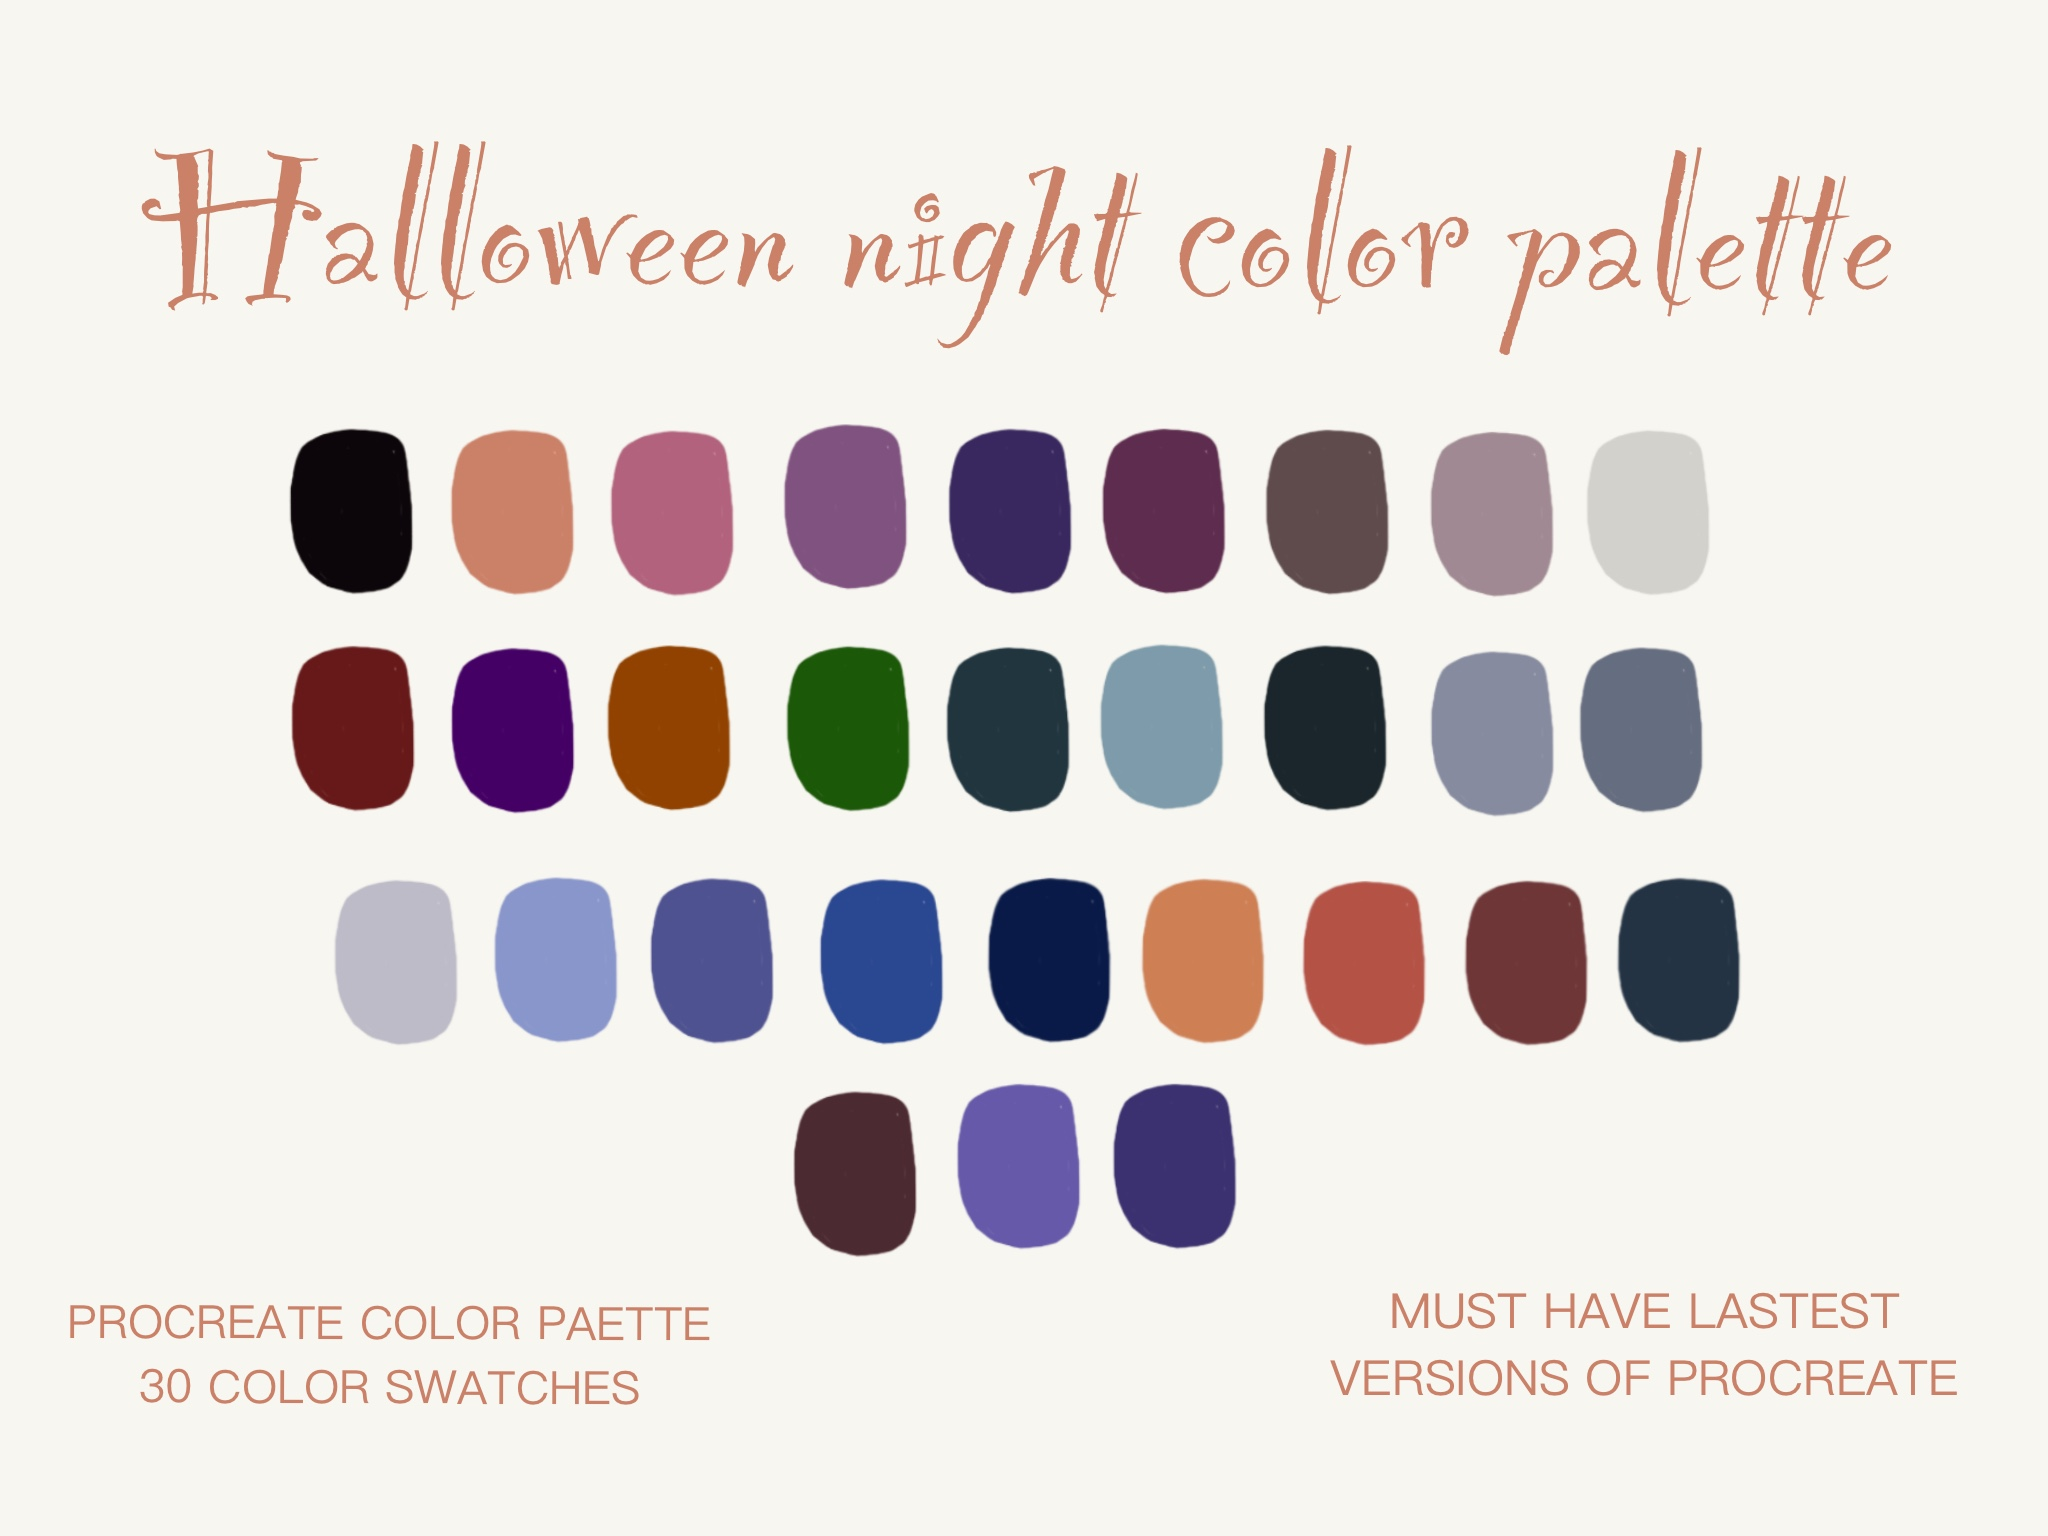 Halloween Color Palettes 2020 Halloween Night Color Palette (Graphic) by Centtaro_product